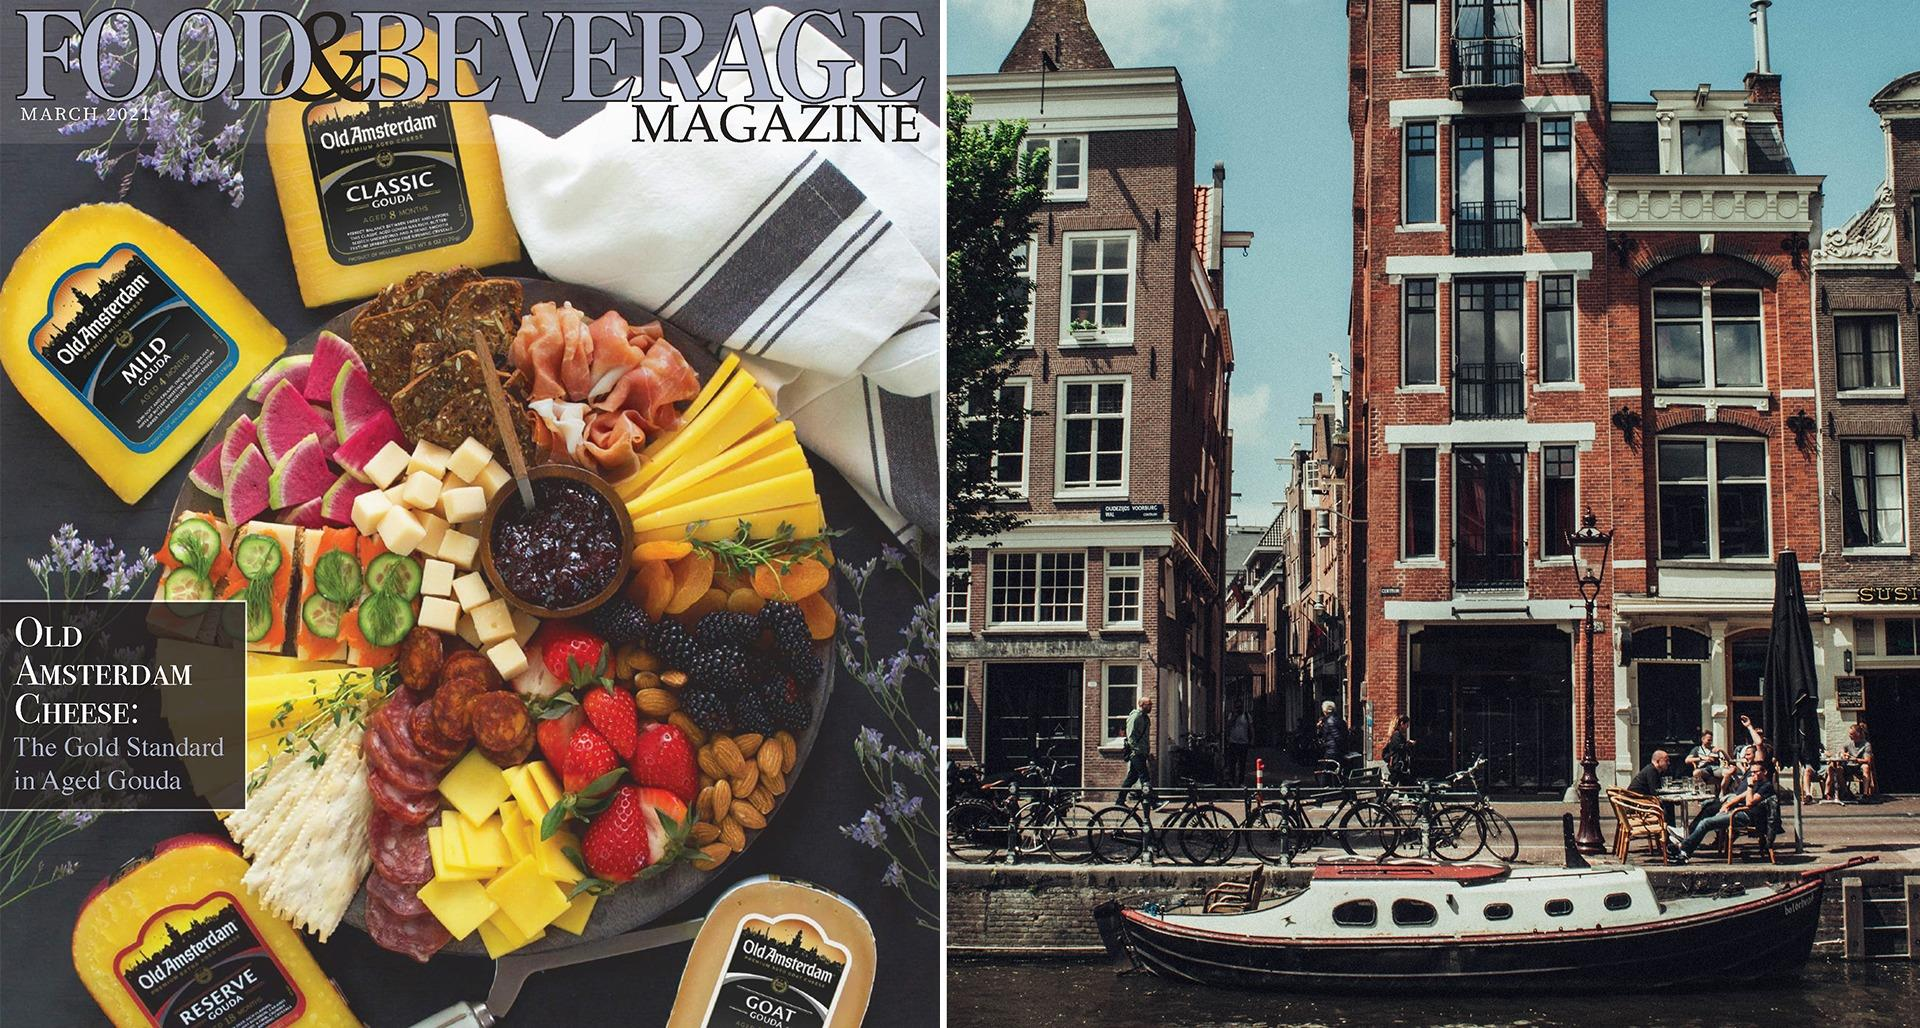 Old Amsterdam Aged Gouda Food & Beverage Magazine Feature